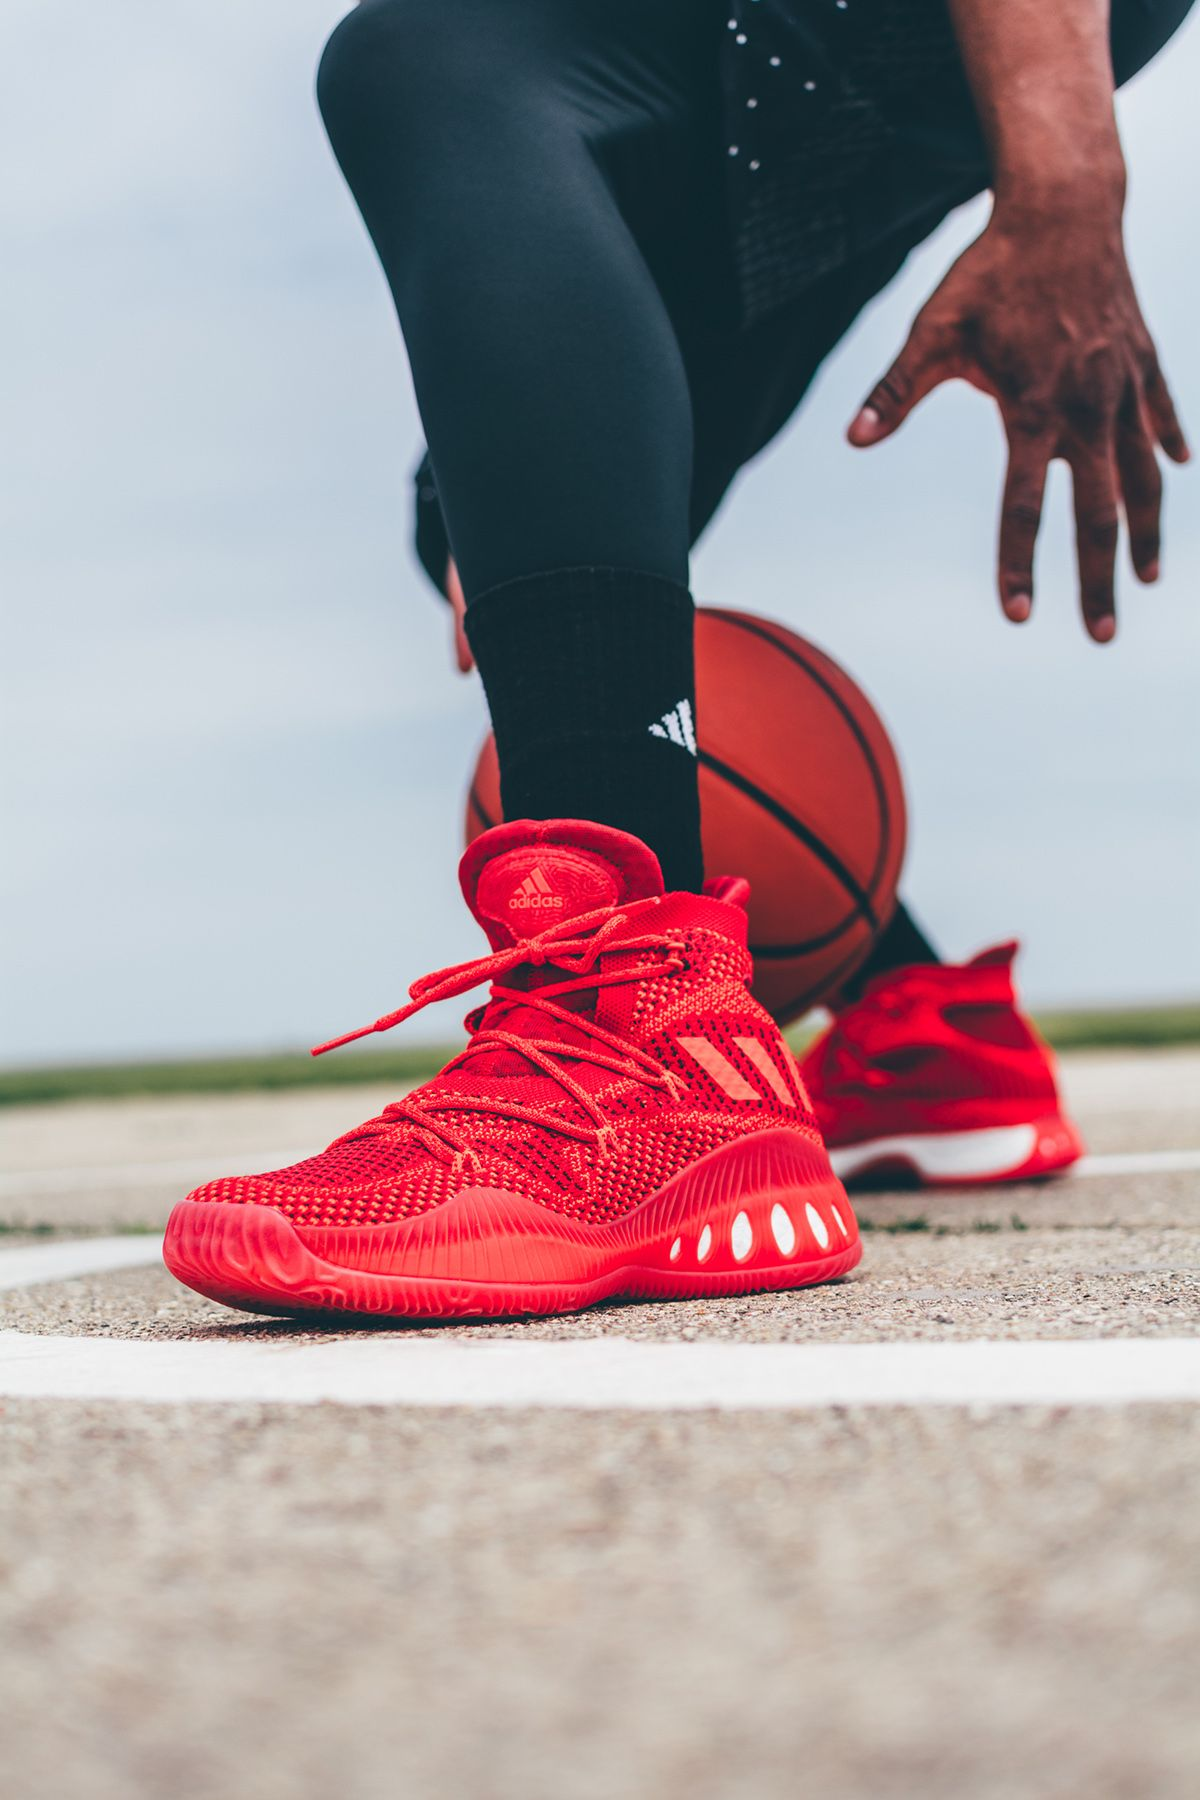 adidas Basketball Andrew Wiggins Introduce the Crazy